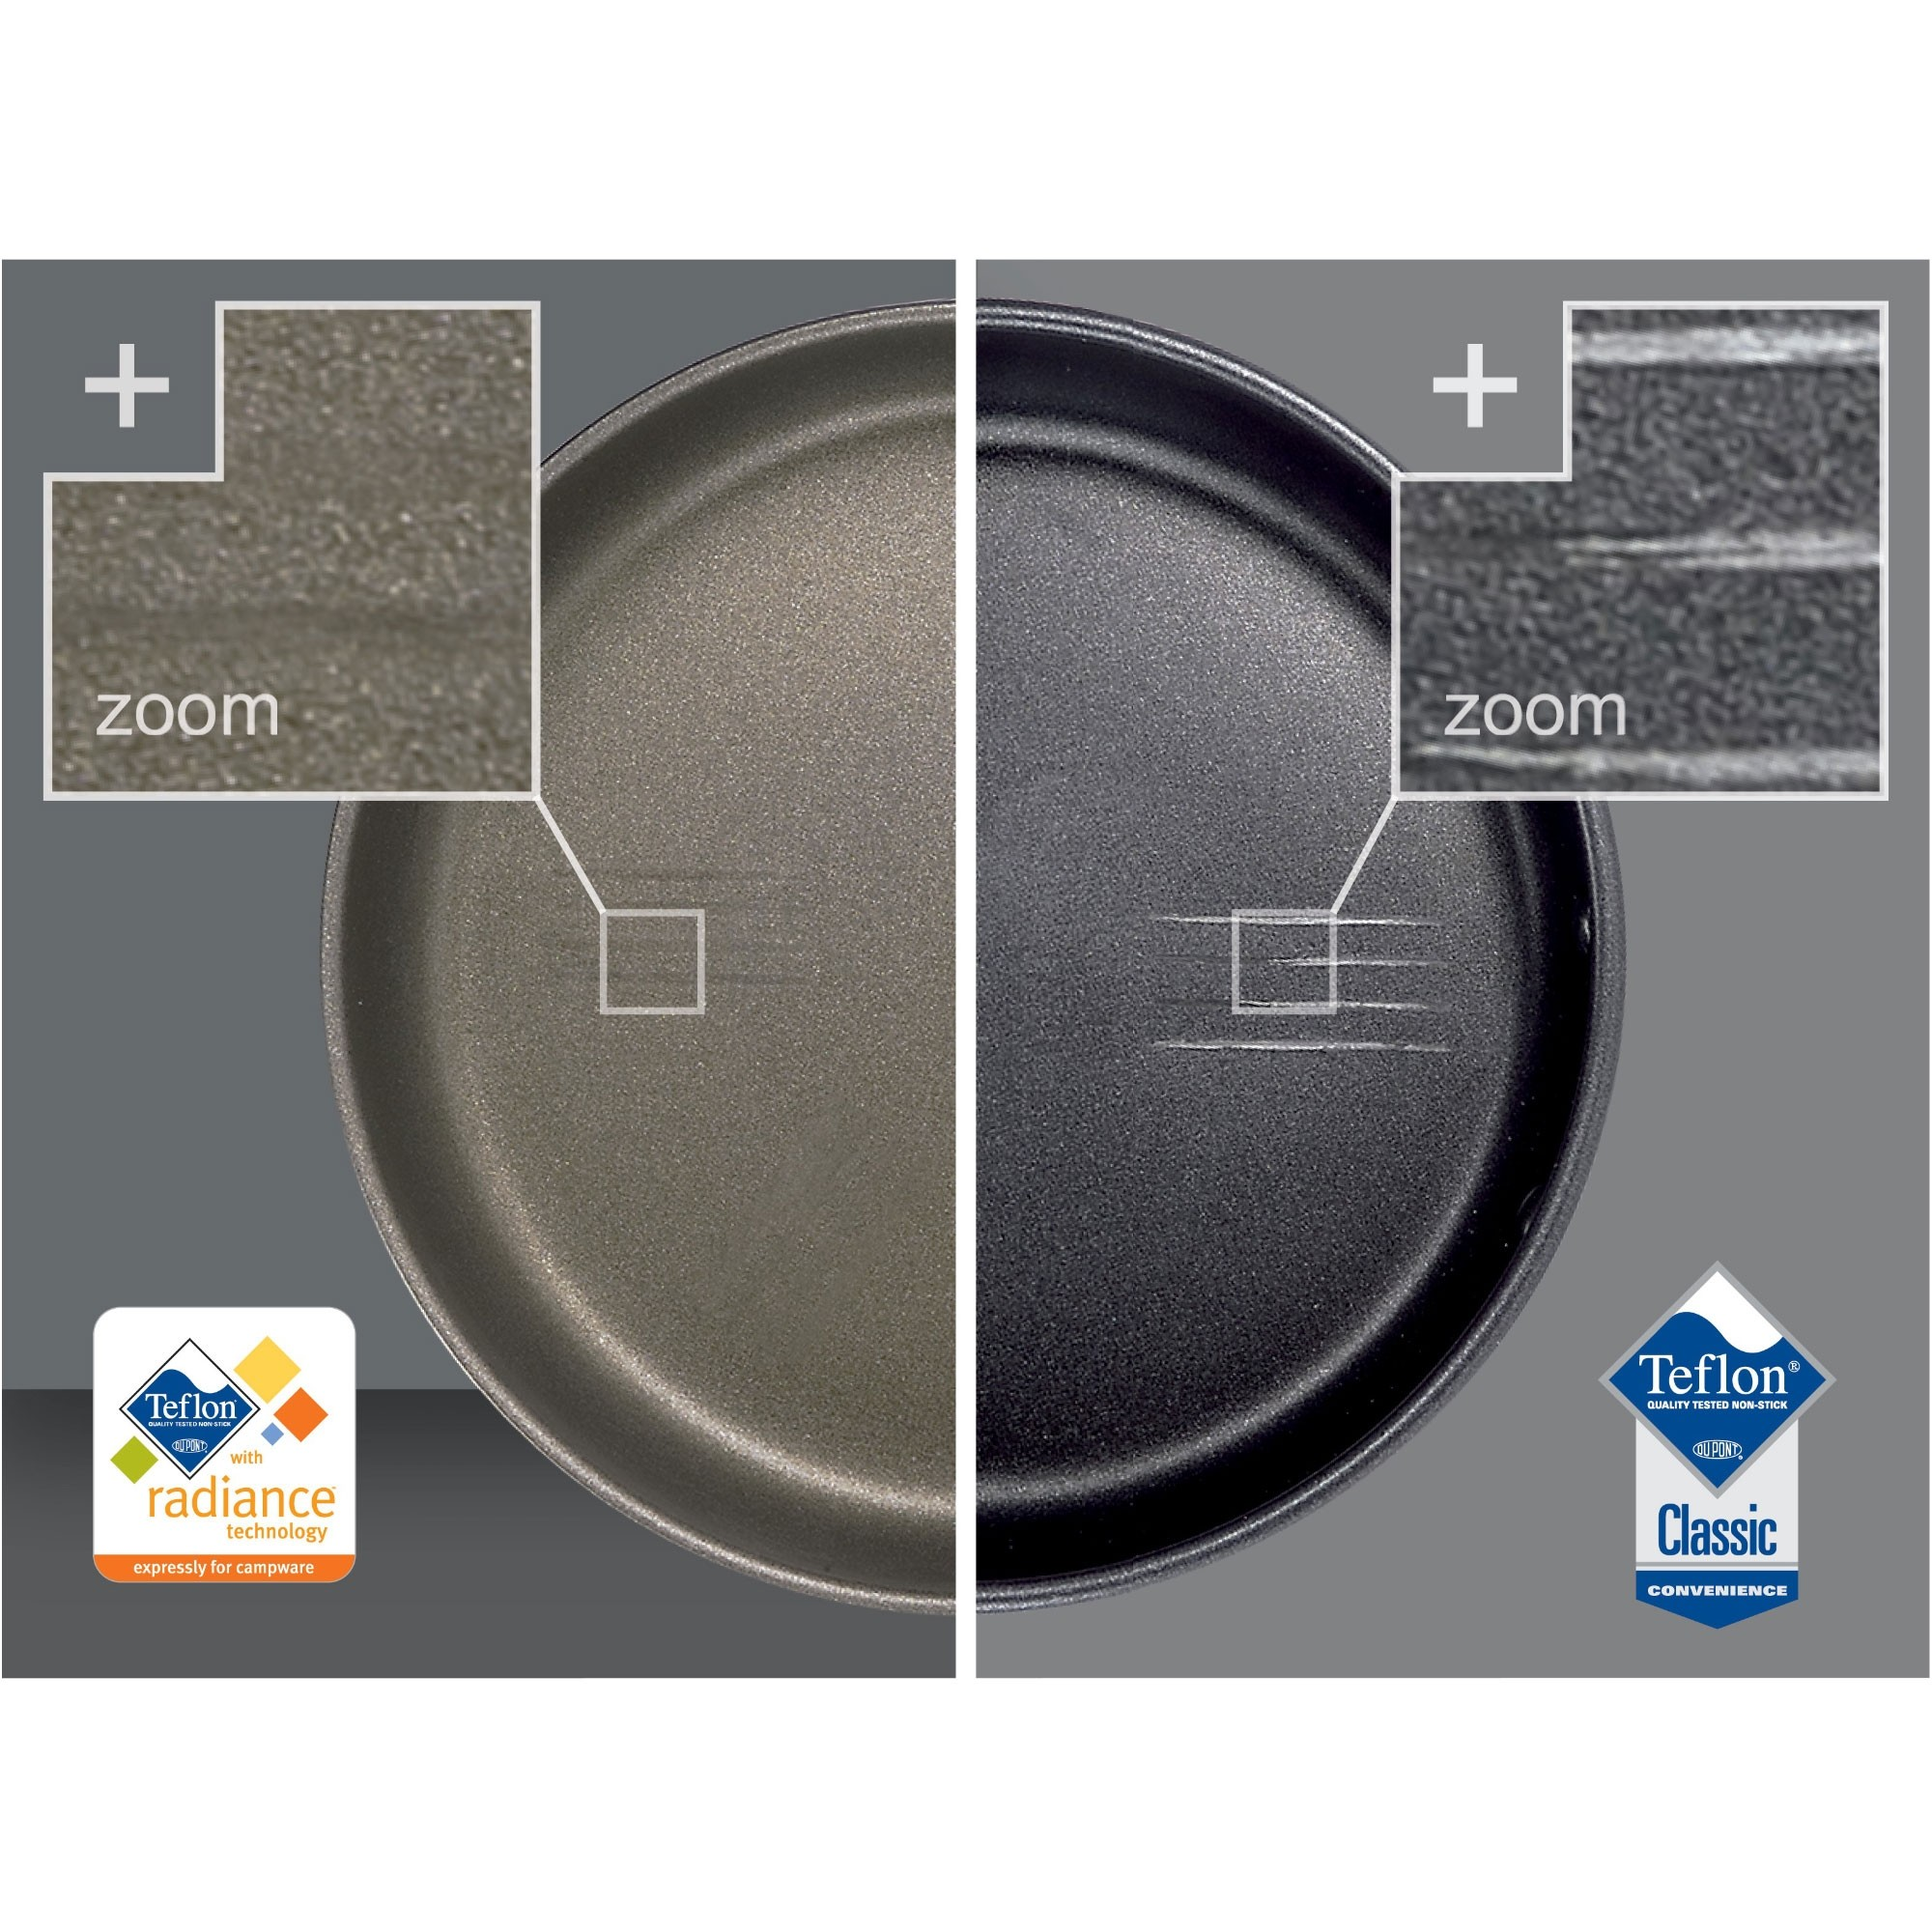 GSI Pinnacle 8 Frypan Teflon Radiance wear